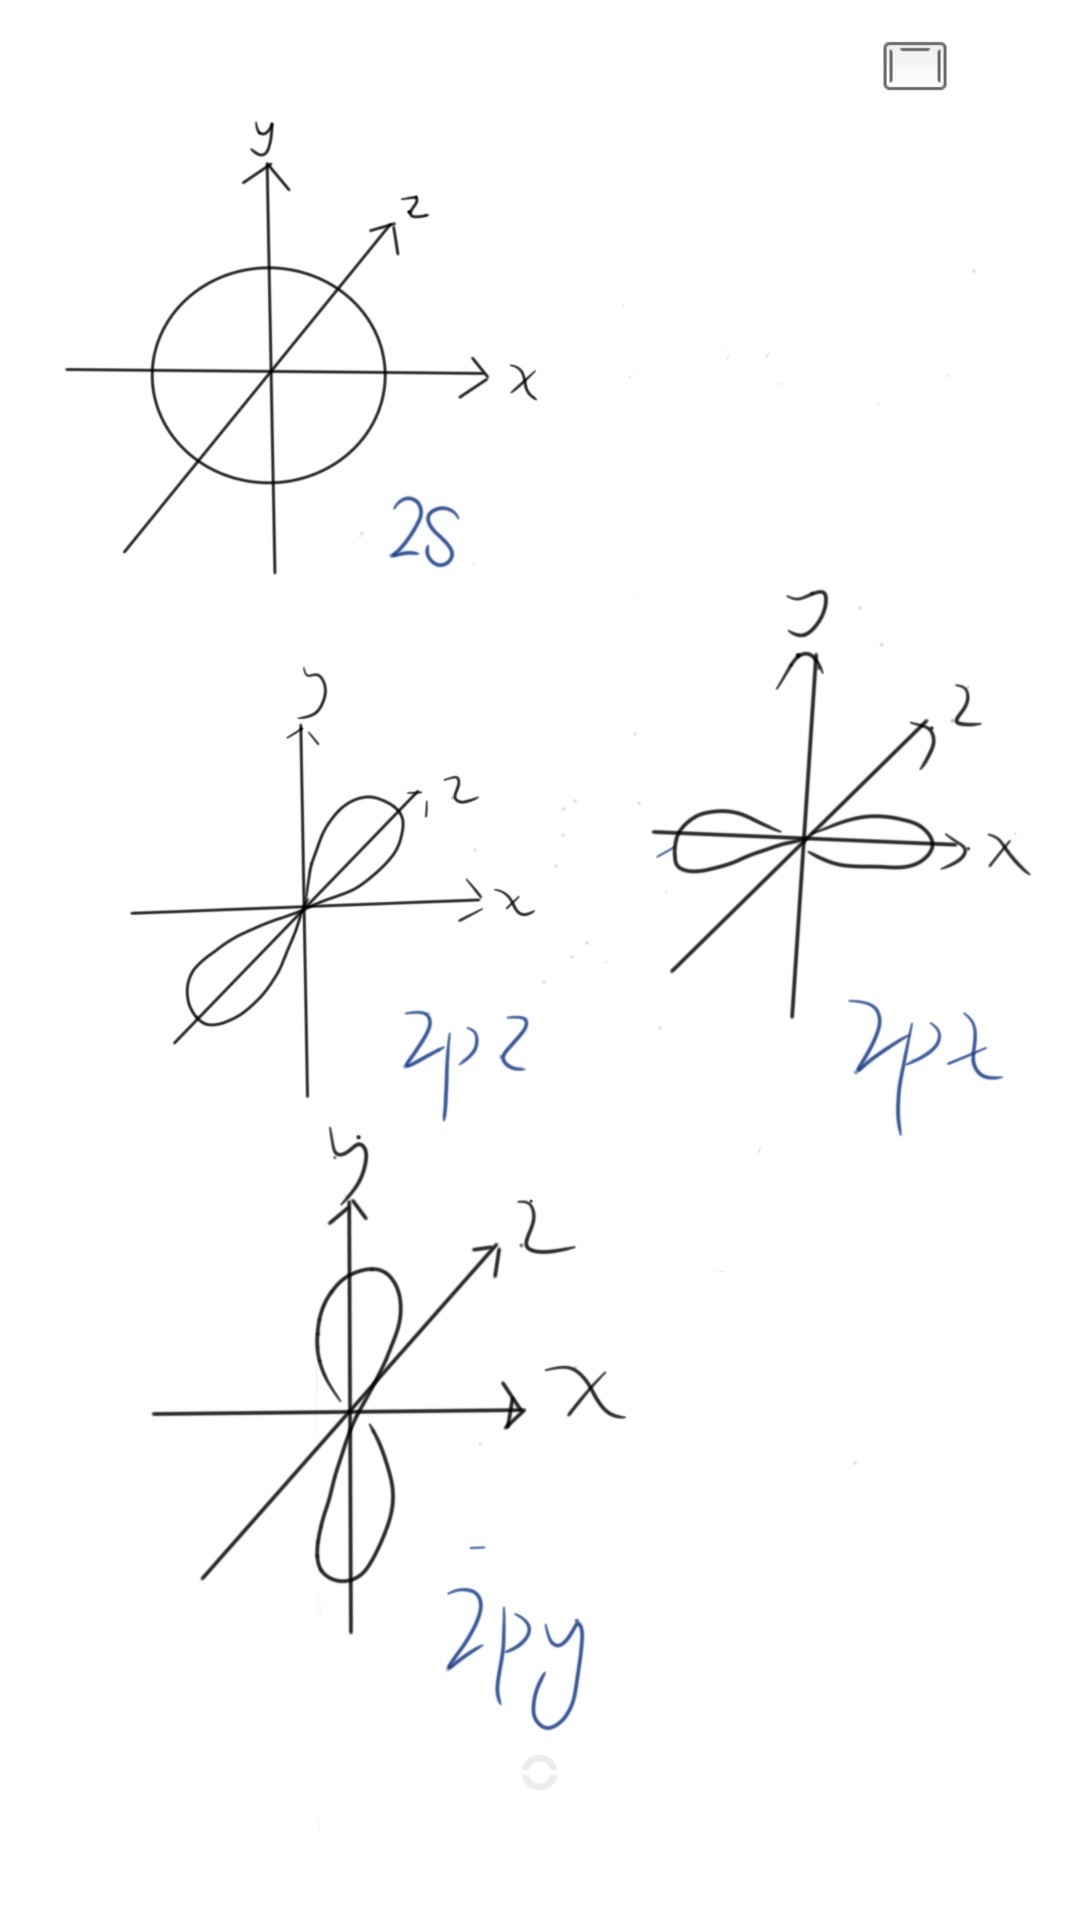 Sketch 1s 2s 2p Orbitals Using The Same Scale For Each